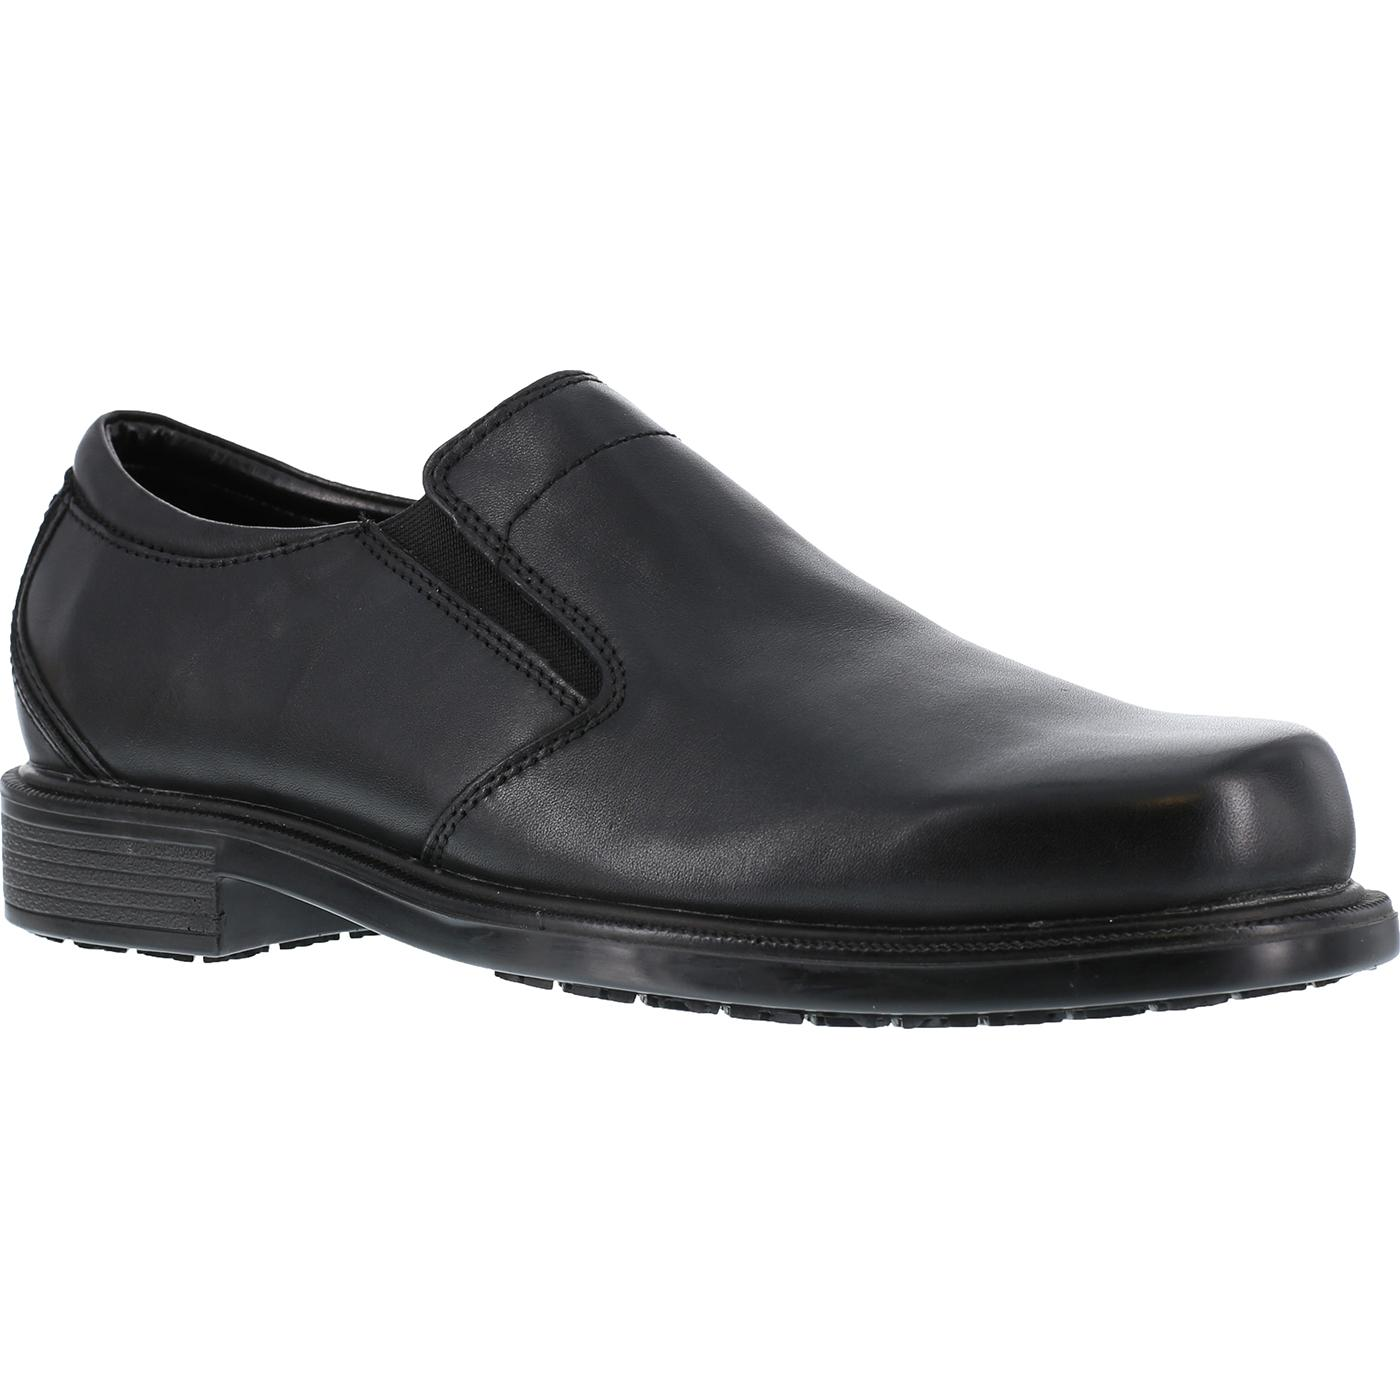 rockport shoes Sale,up to 75% Discounts